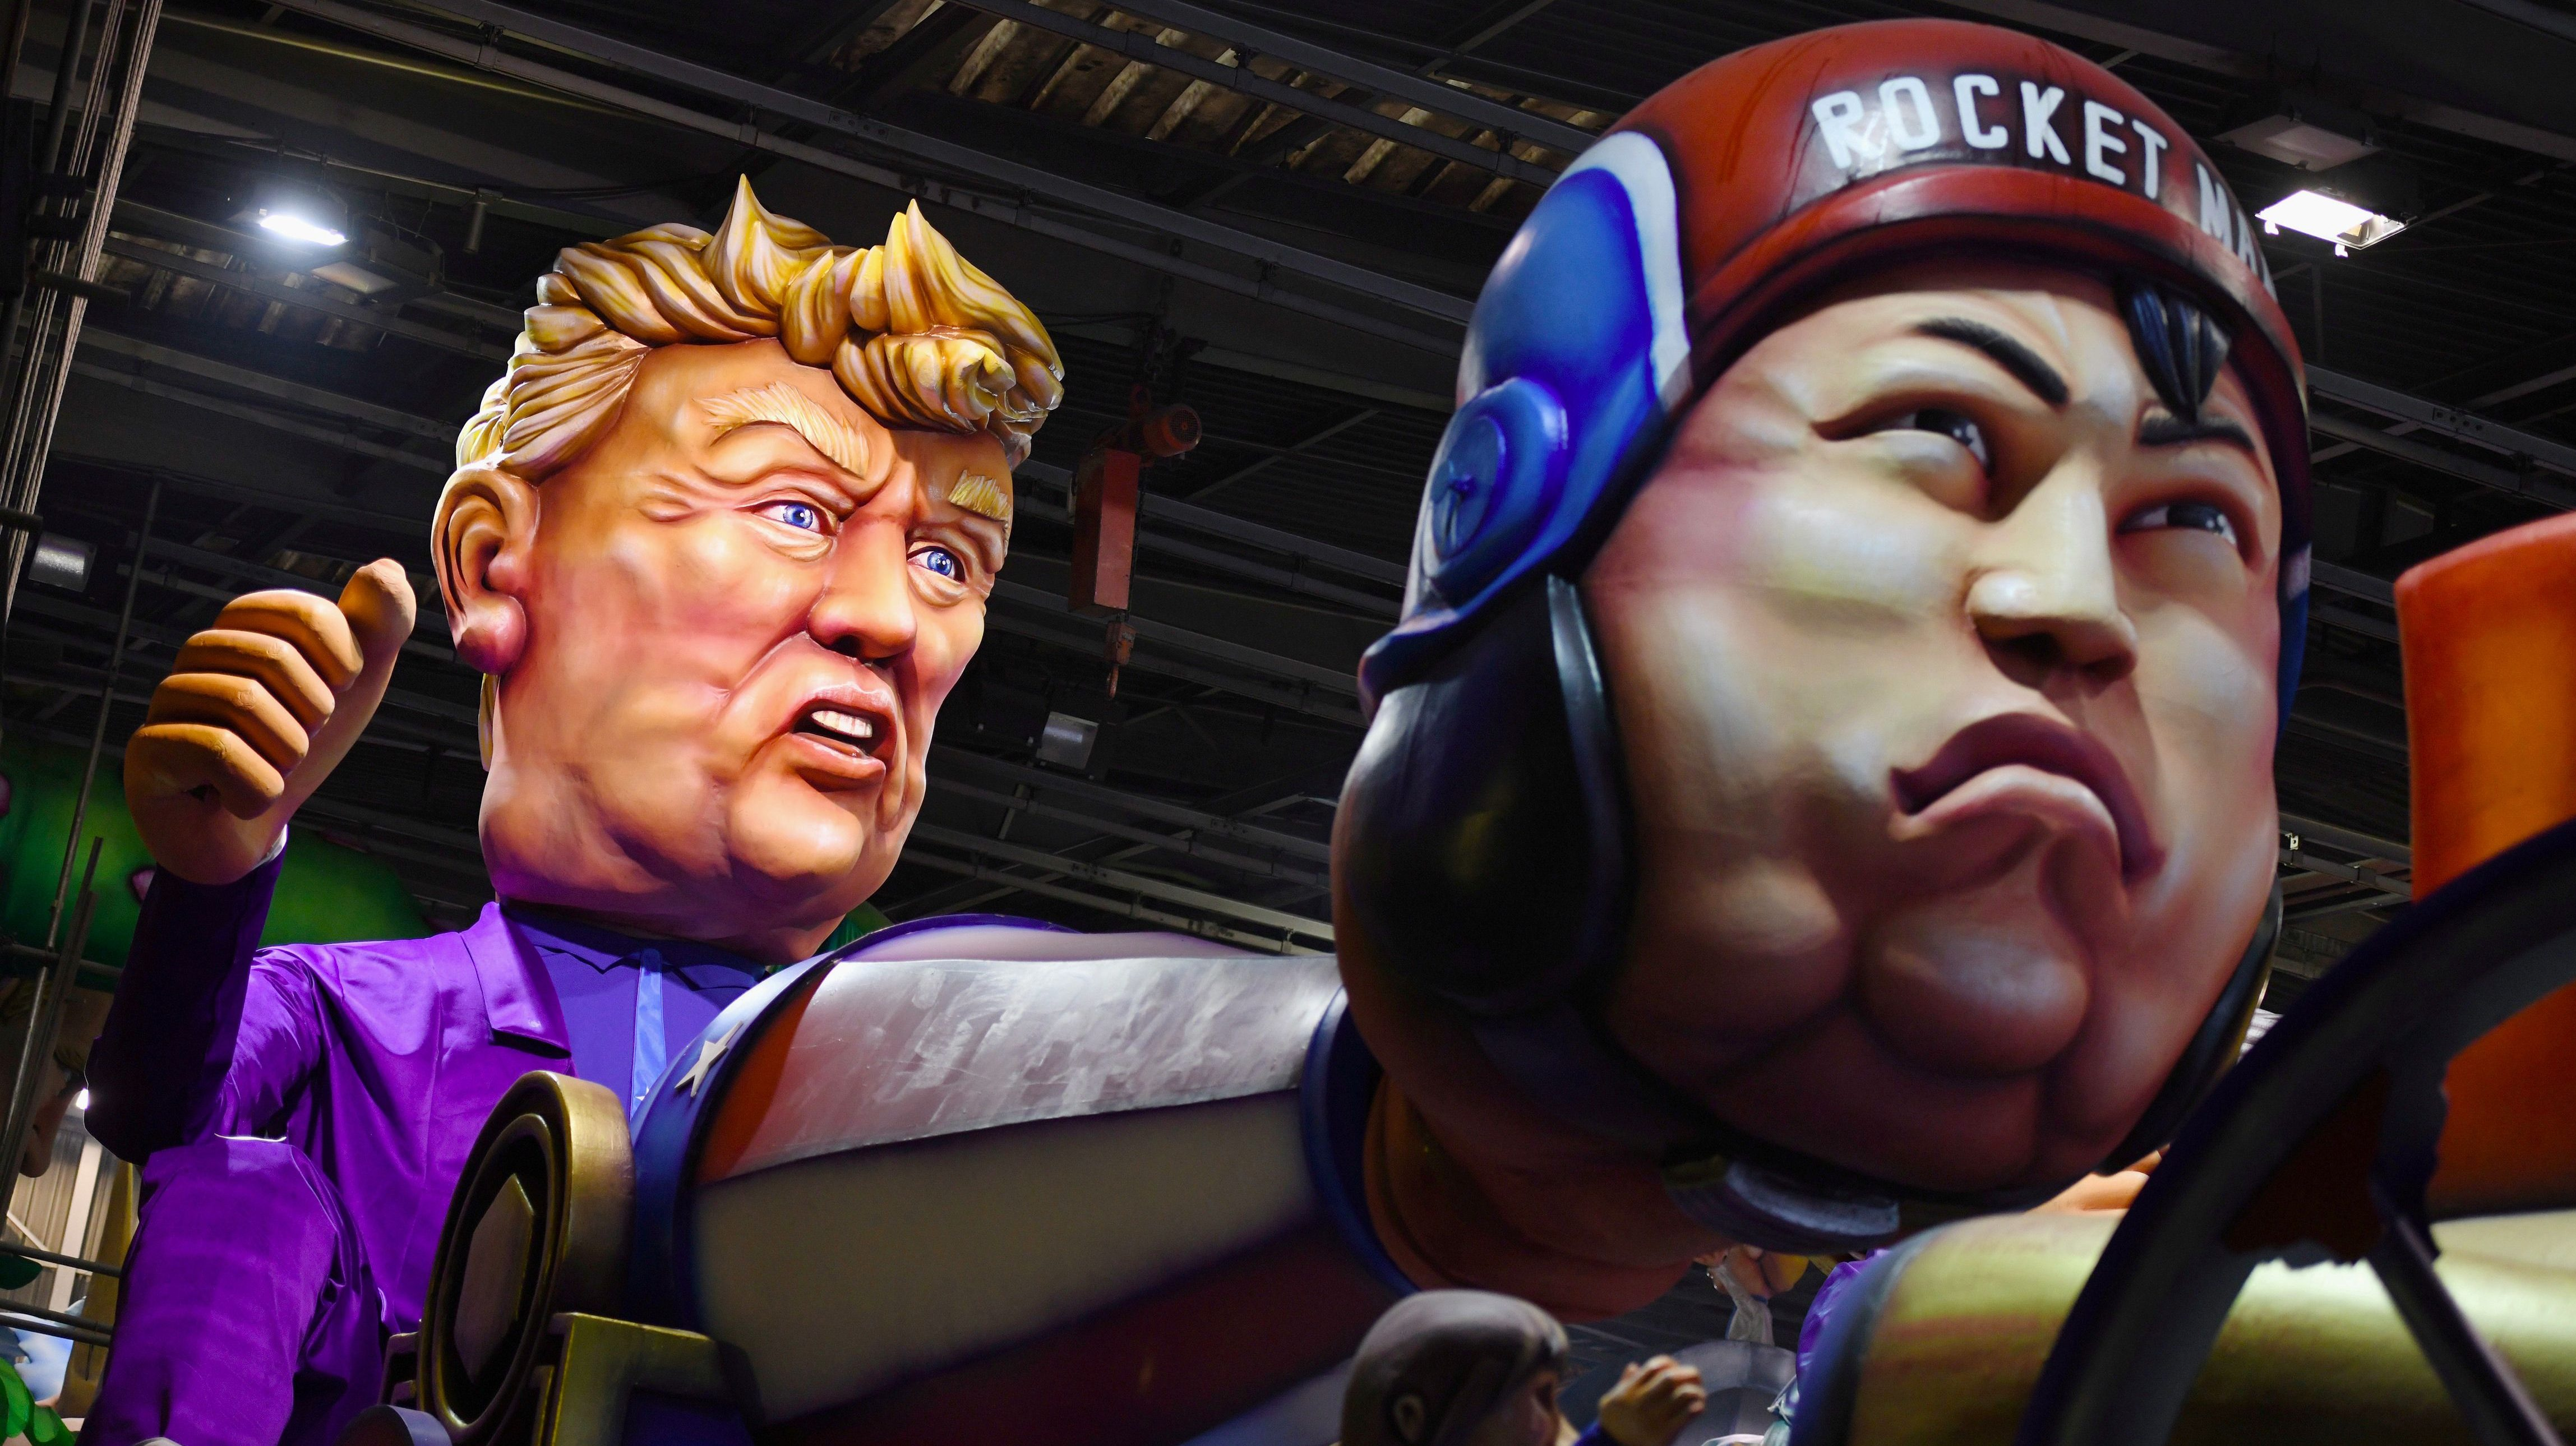 A float with giant figures of North Korean leader Kim Jong Un and U.S President Donald Trump is seen during preparations for the carnival parade in Nice, France February 17, 2018.